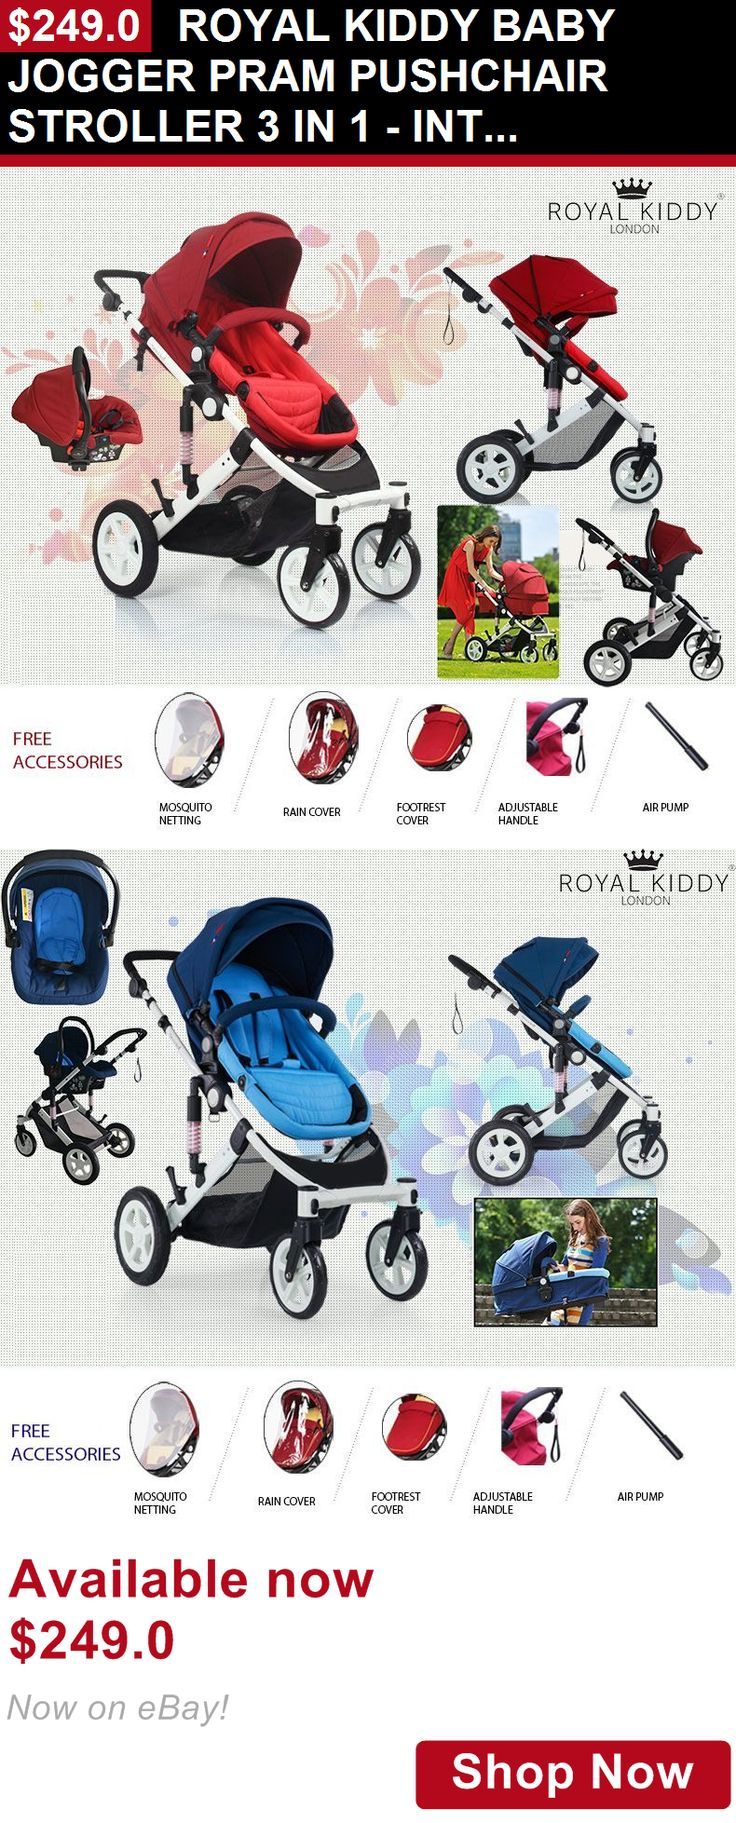 Other Strollers: Royal Kiddy Baby Jogger Pram Pushchair Stroller 3 In 1 - Int. Safety Standard BUY IT NOW ONLY: $249.0